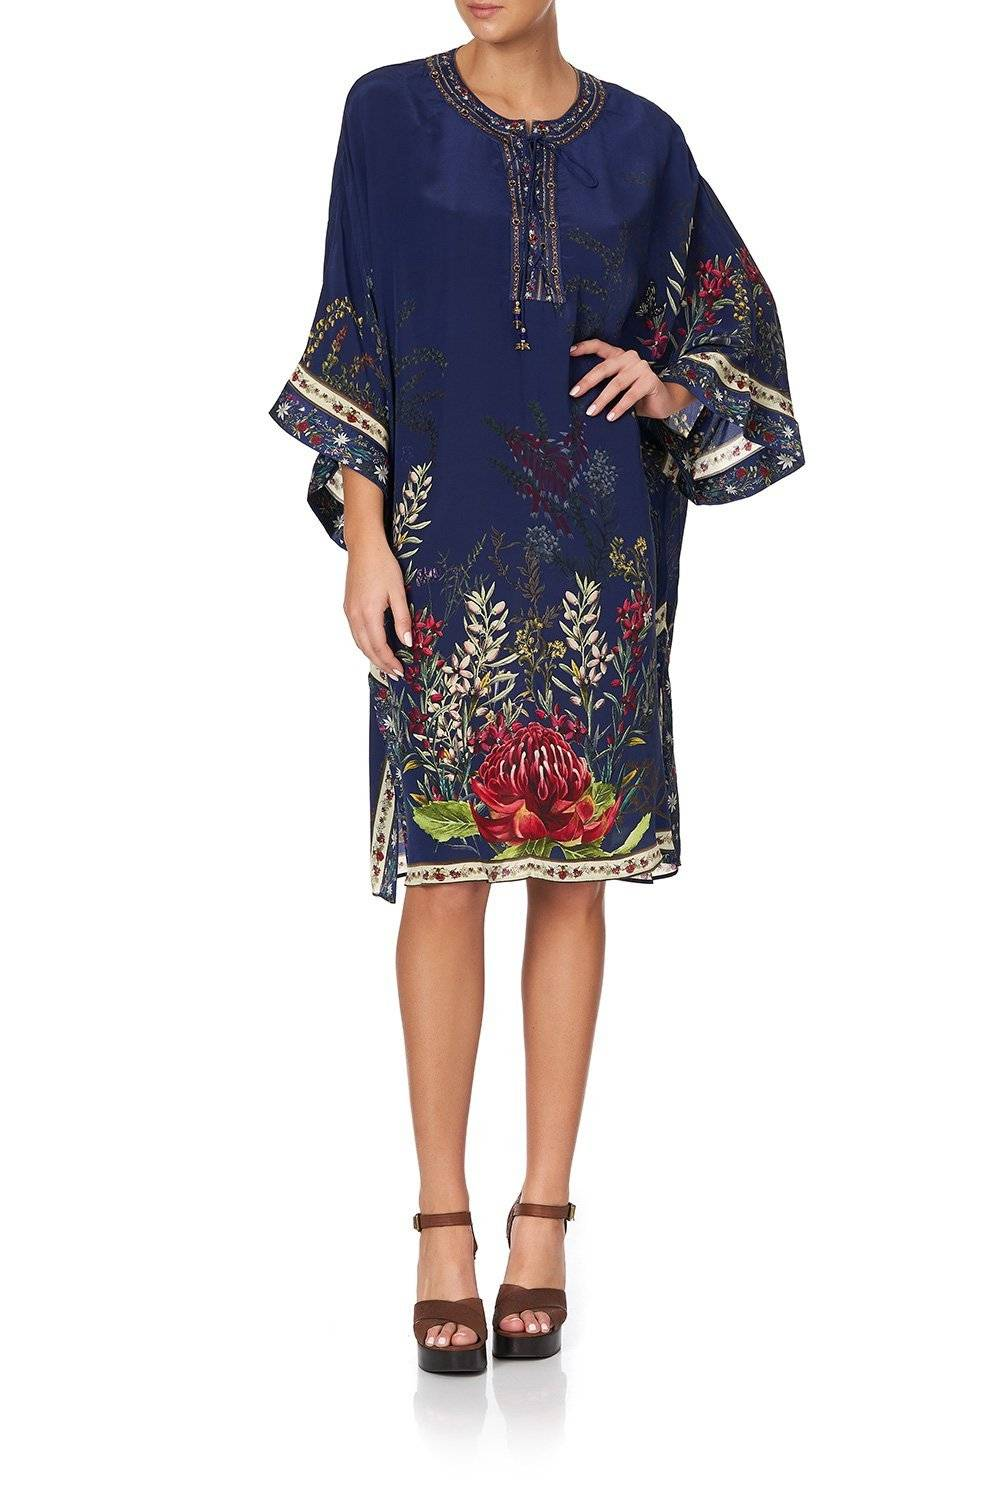 WINGS IN ARMS LACE UP FRONT KAFTAN